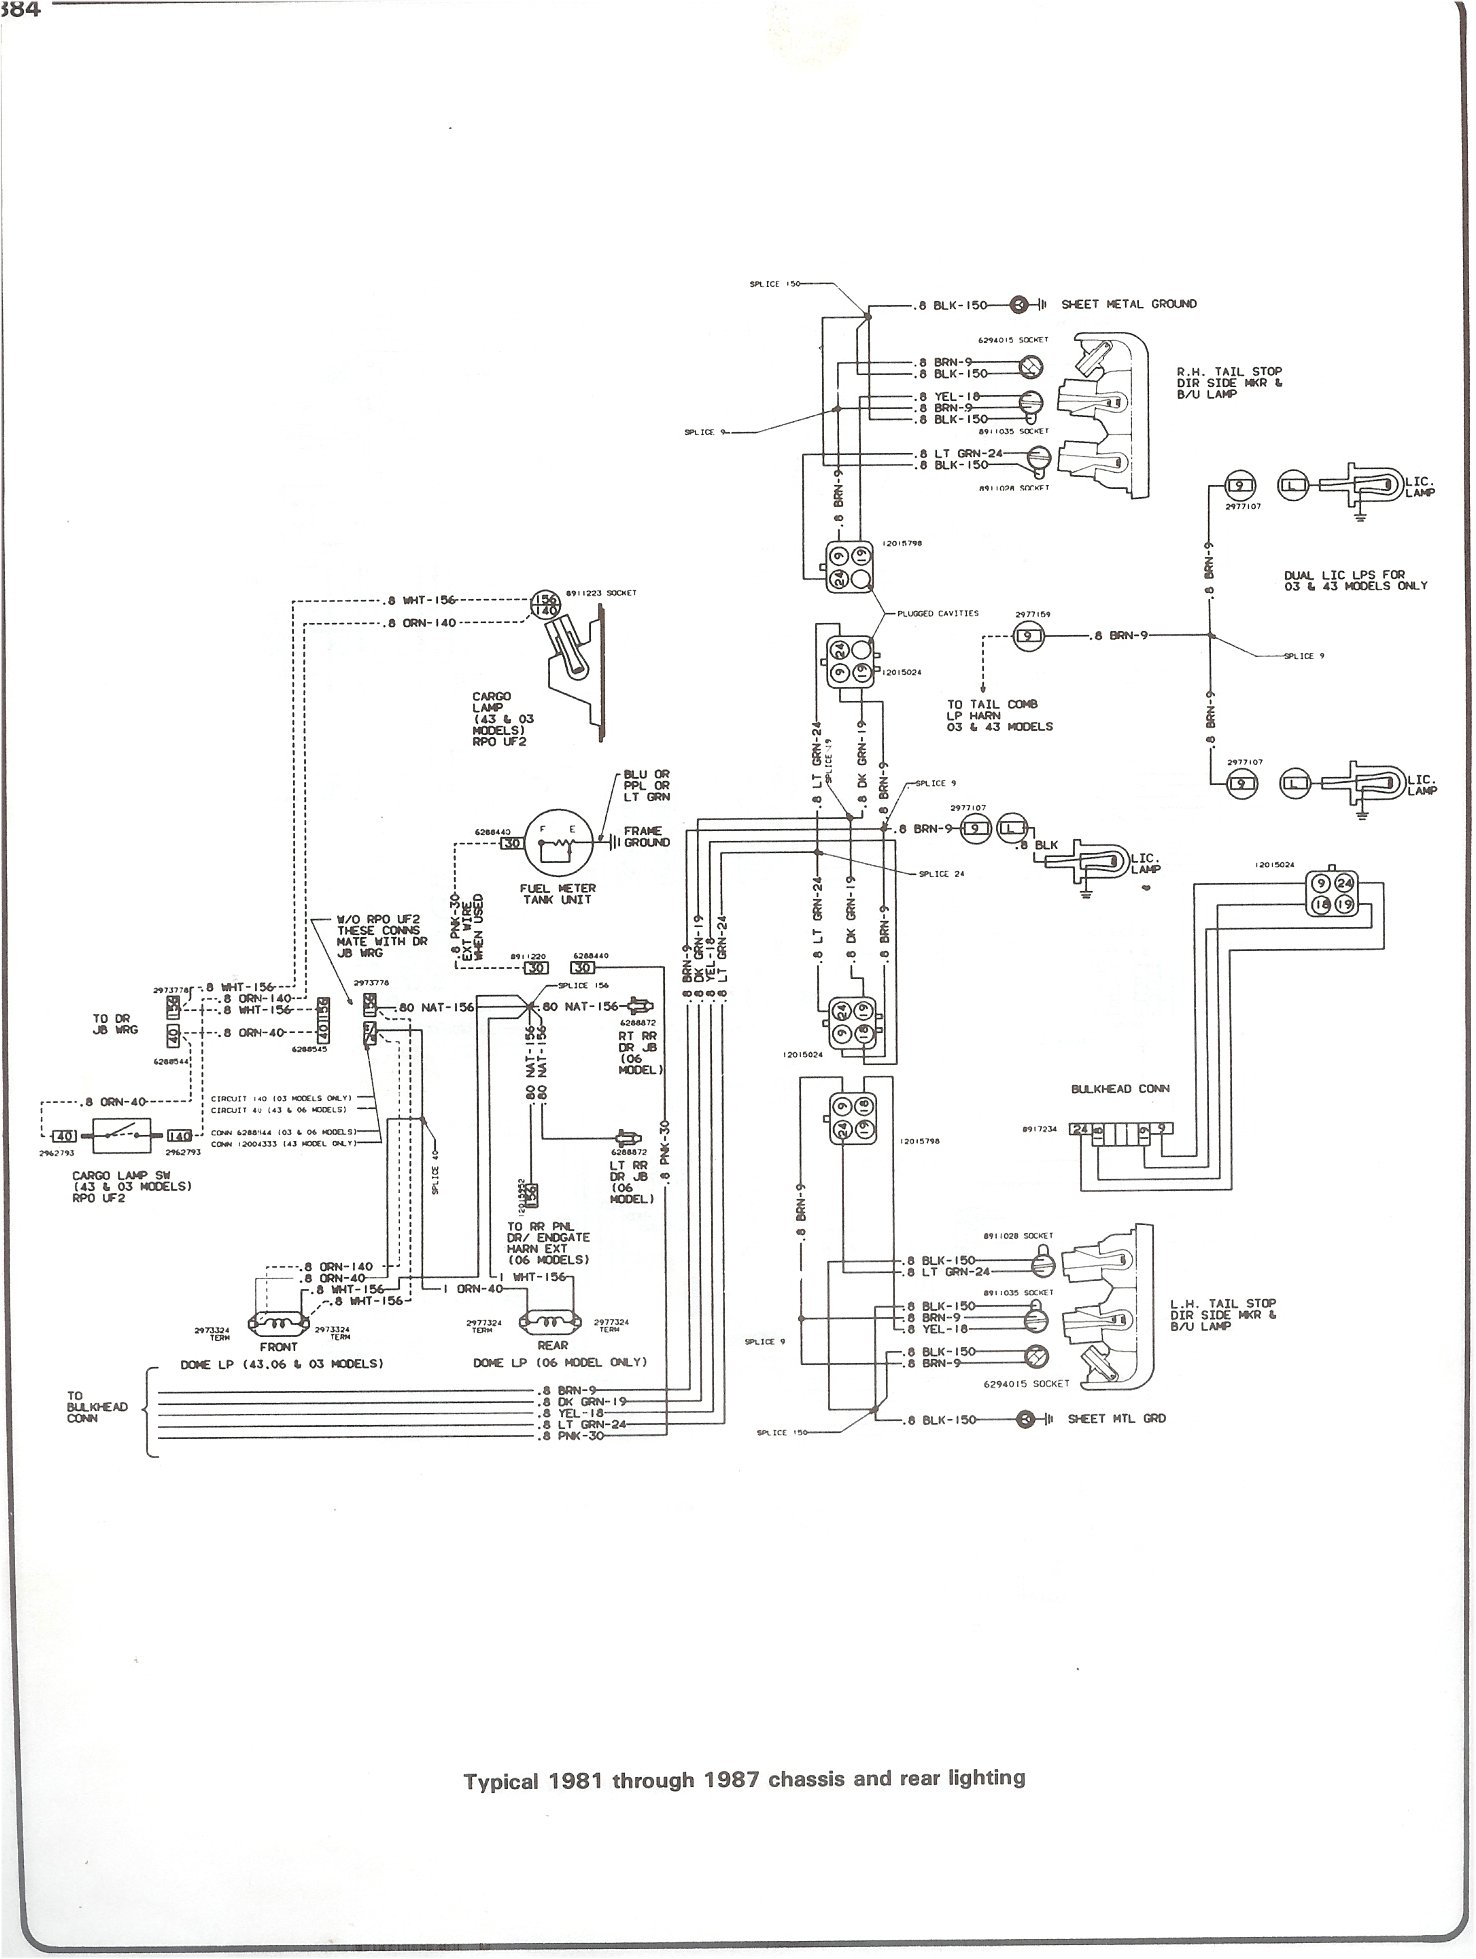 83 K20 Wiring Diagram Guide And Troubleshooting Of Small Block Chevy 1981 Complete 73 87 Diagrams Rh Forum 87chevytrucks Com Cool Truck Paint Jobs